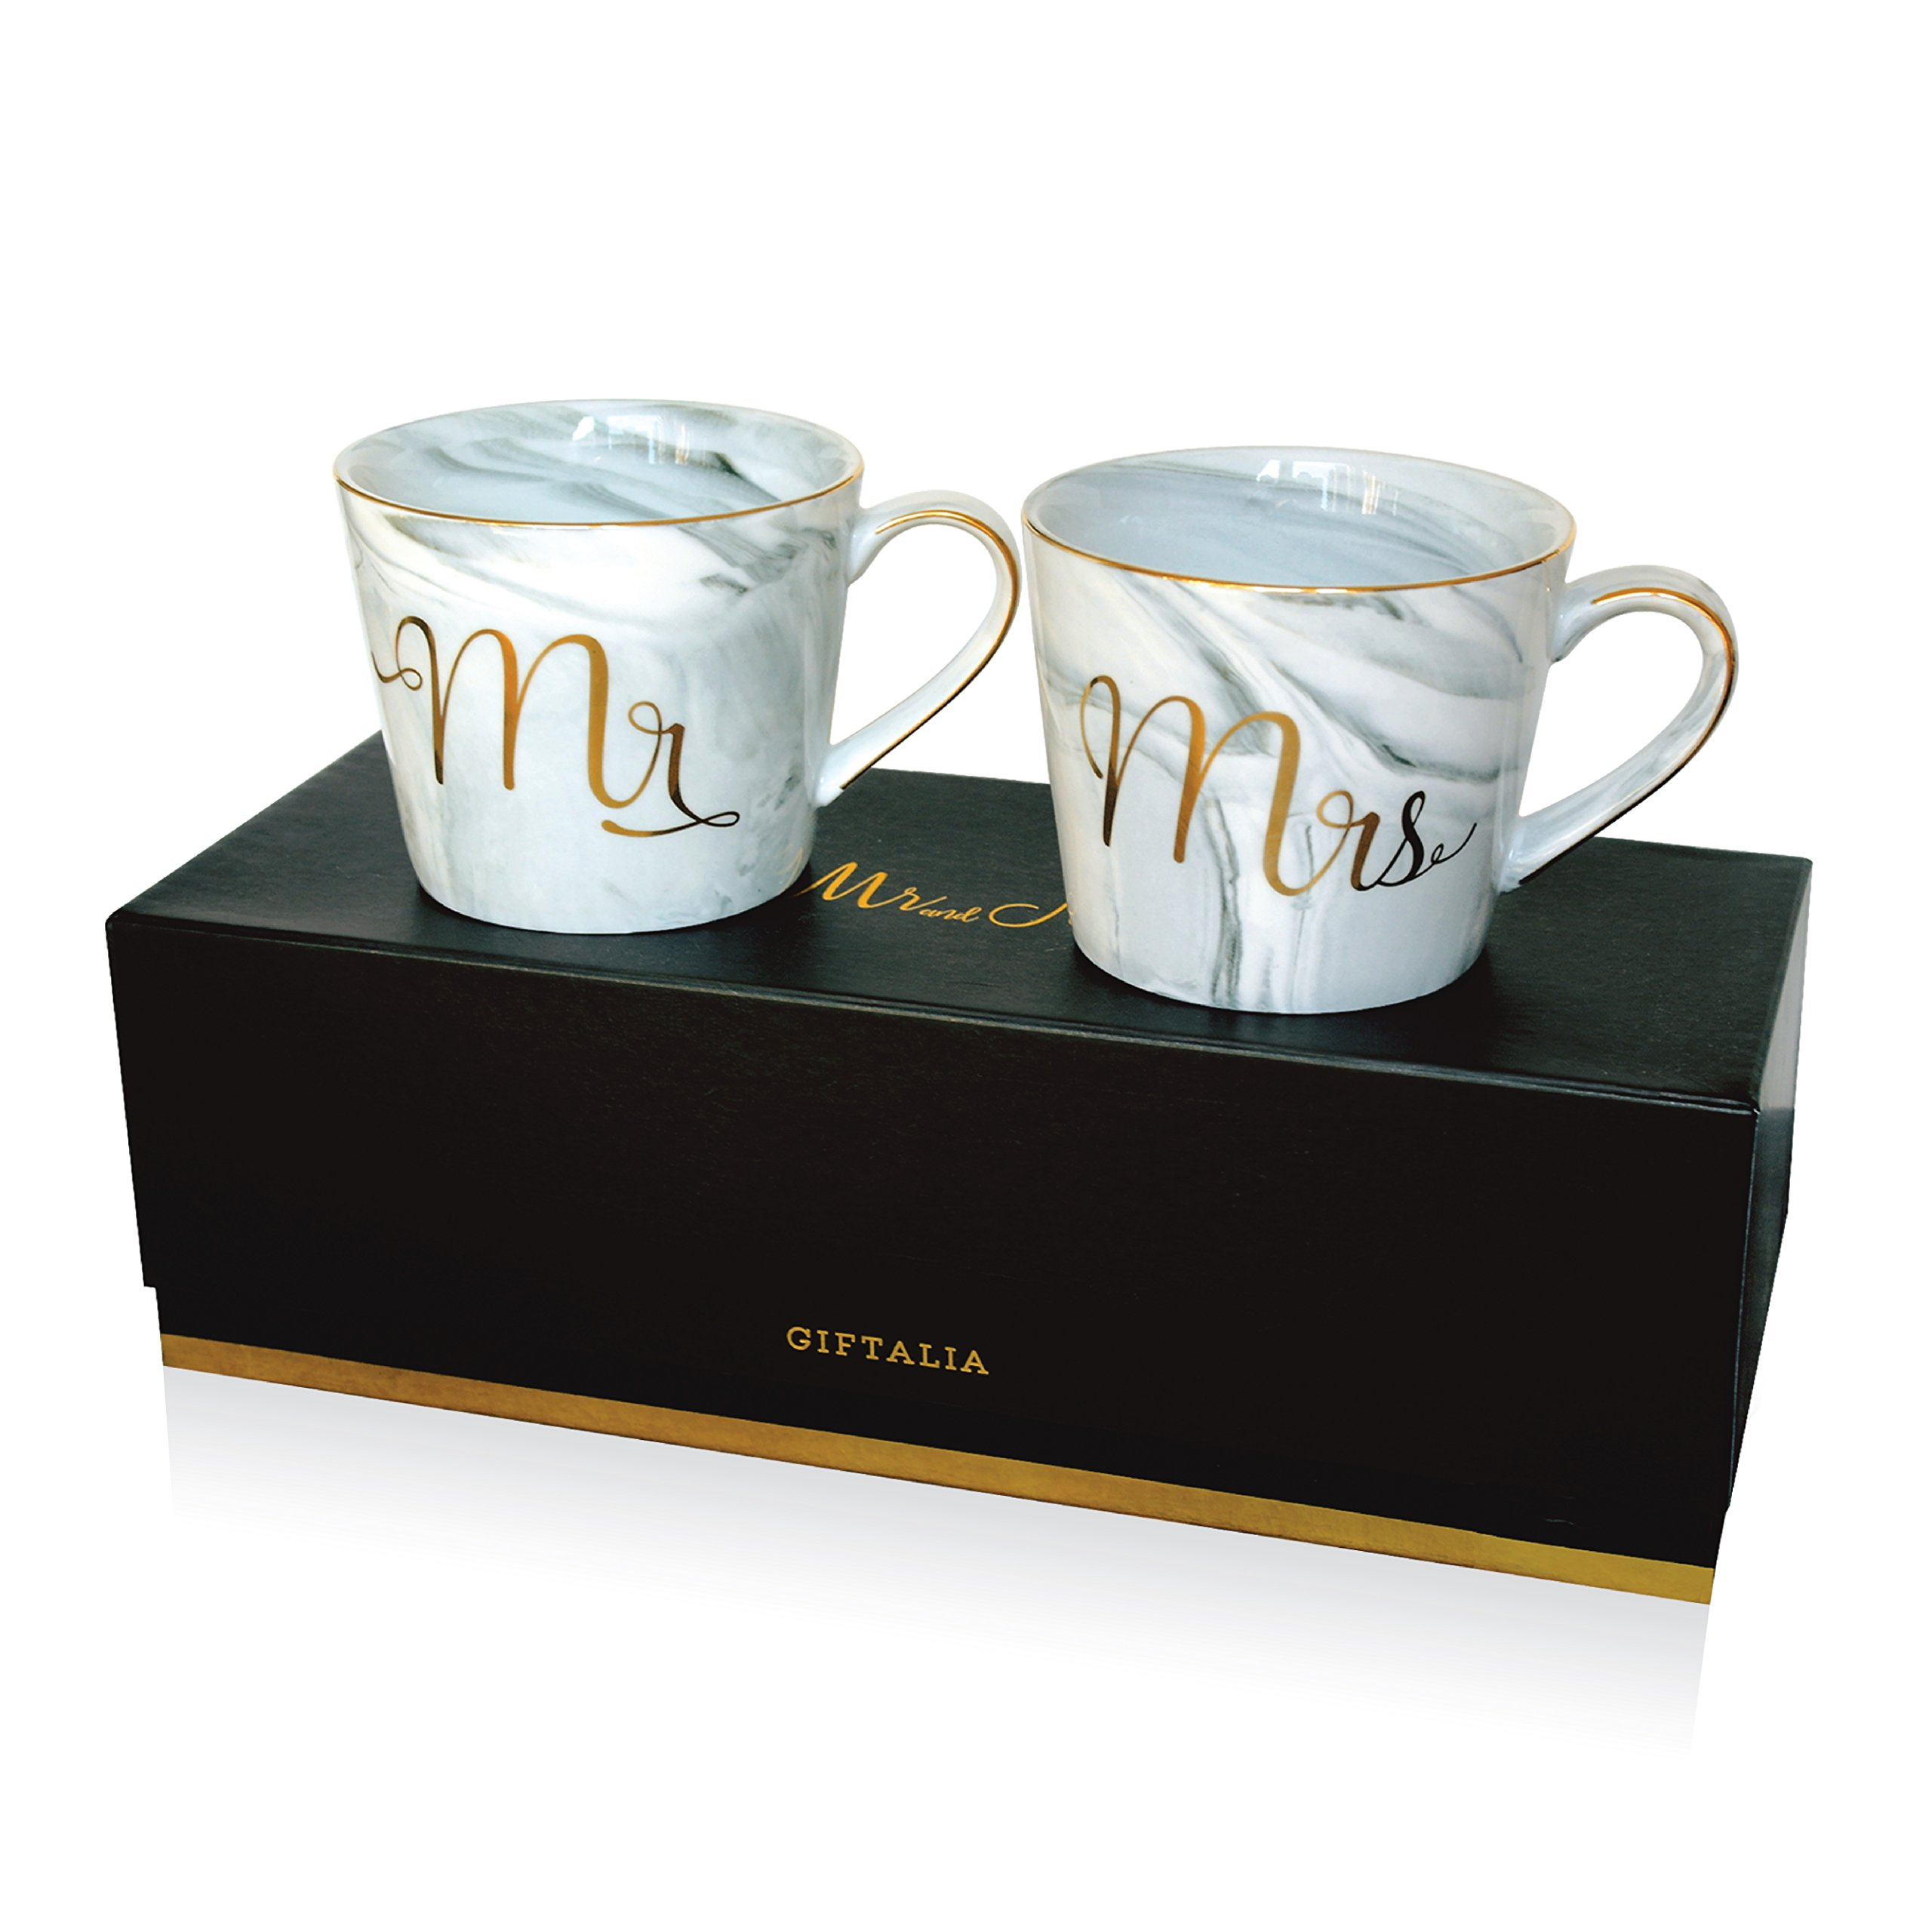 Wedding Gift - Mr and Mrs Mug Set - Classy and Elegant Gift Box with 2 Marble/Gold Tea or Coffee Cups - Beautiful Couples Anniversary, Engagement or Wedding Present for Bride and Groom - His and Her's by GIFTALIA (Image #2)